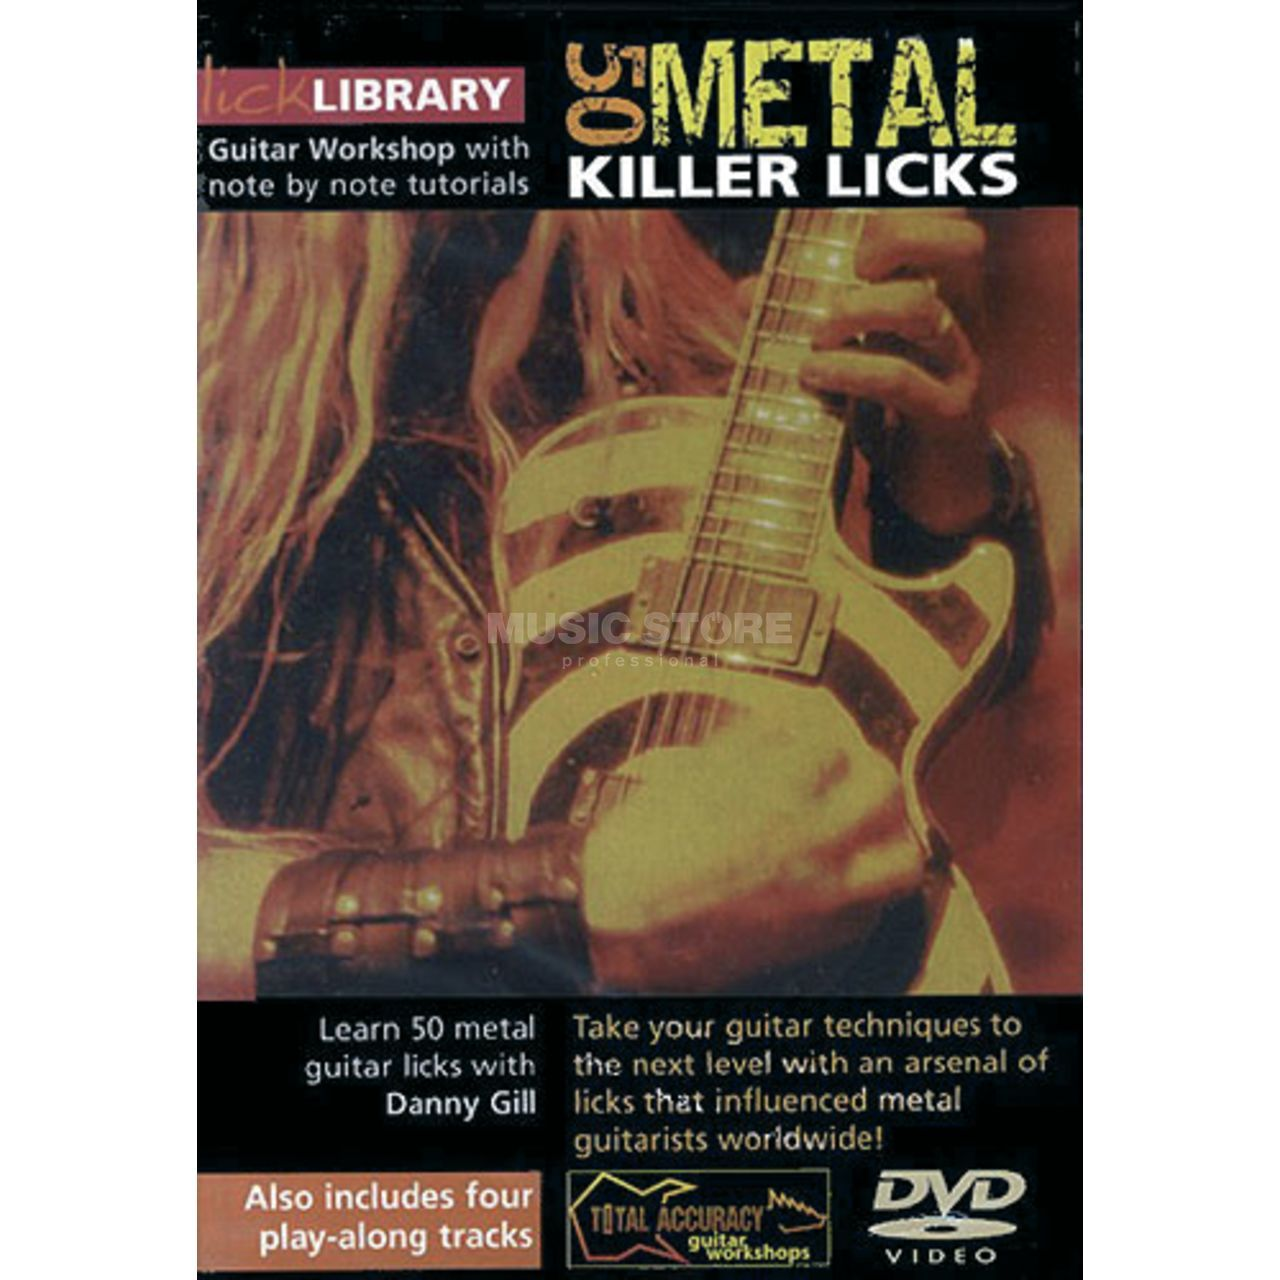 That's Lick library killer guitar mine